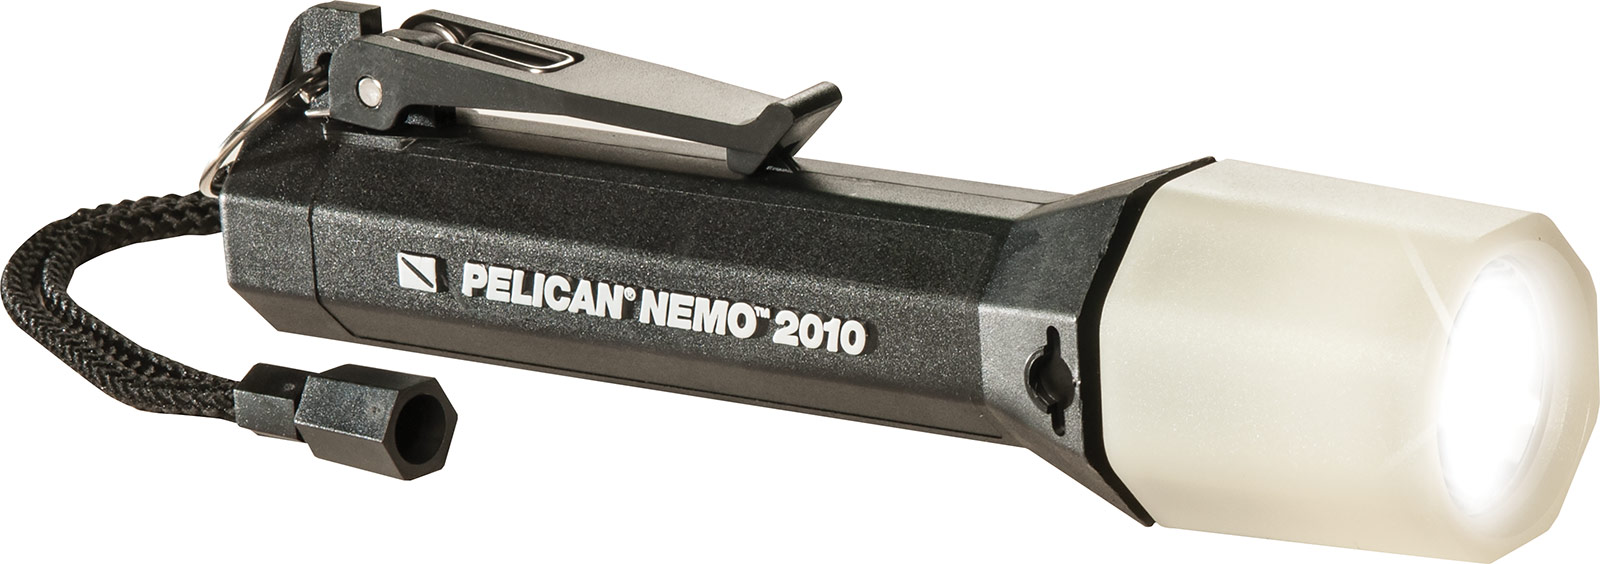 pelican 2010n nemo black led flashlight